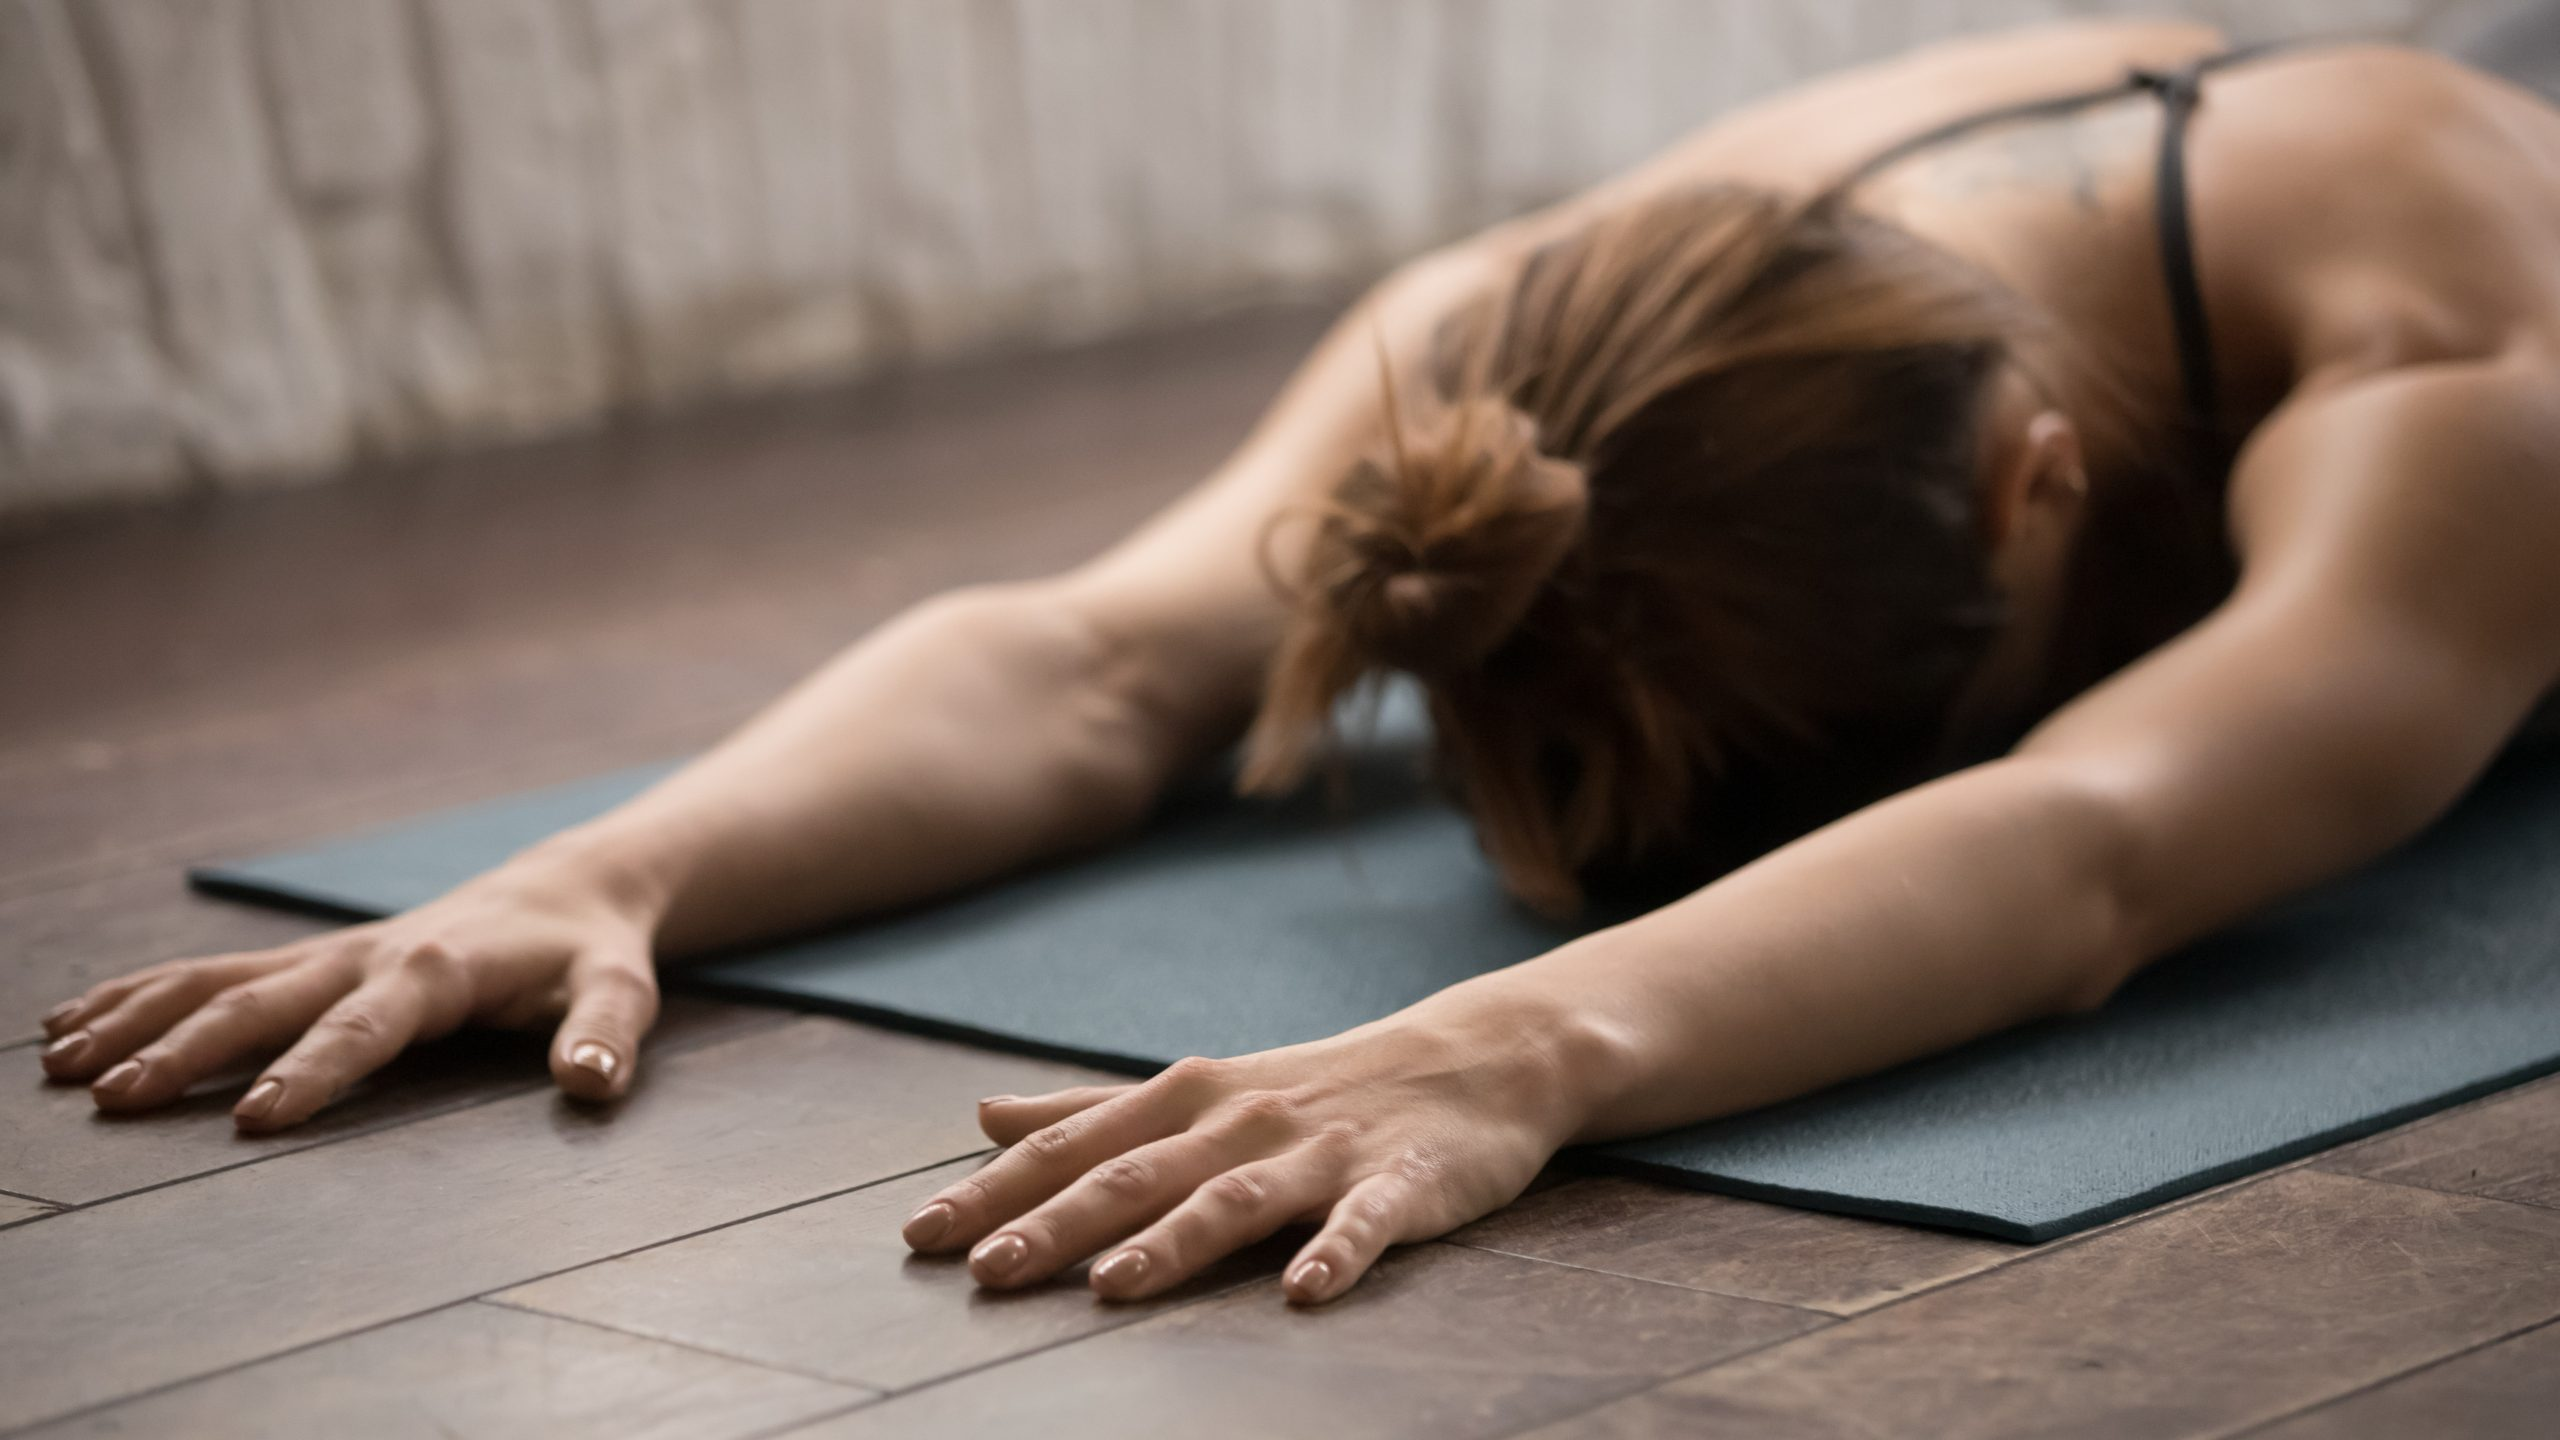 Attractive woman practicing yoga, relaxing after training, lying face down